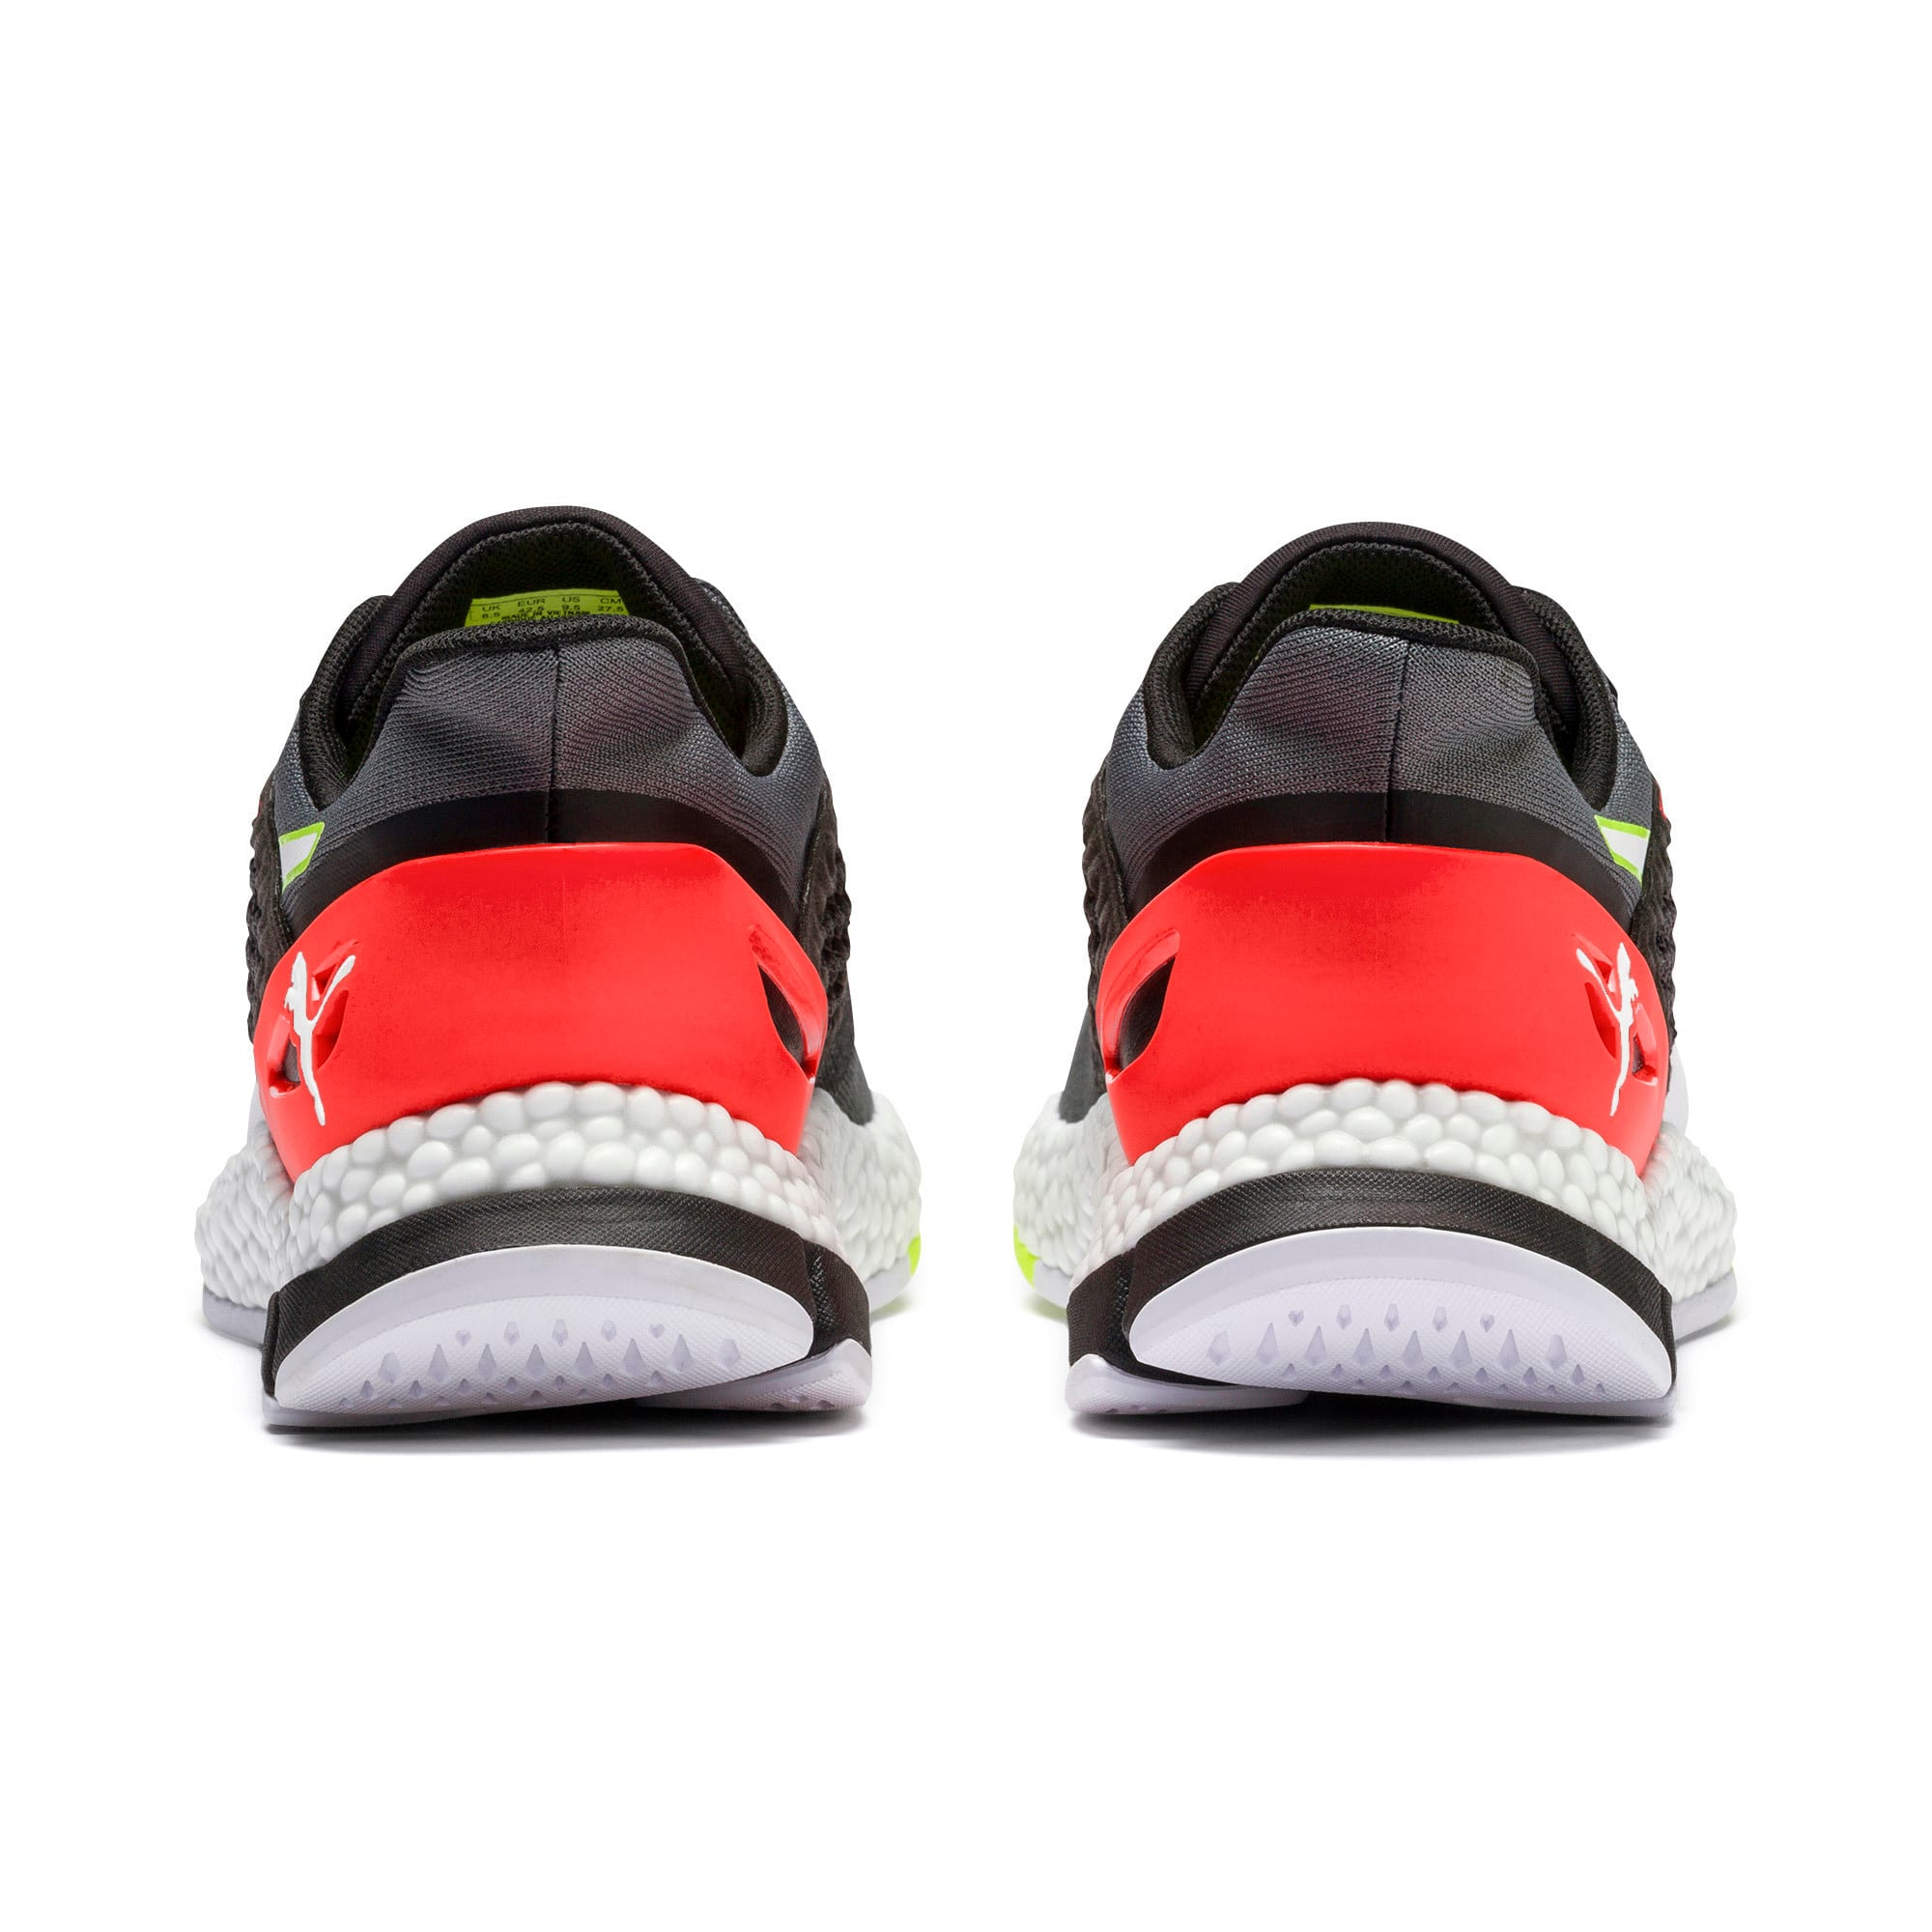 Thumbnail 4 of HYBRID NETFIT Astro Men's Running Shoes, CASTLEROCK-Puma Blck-Ngy Red, medium